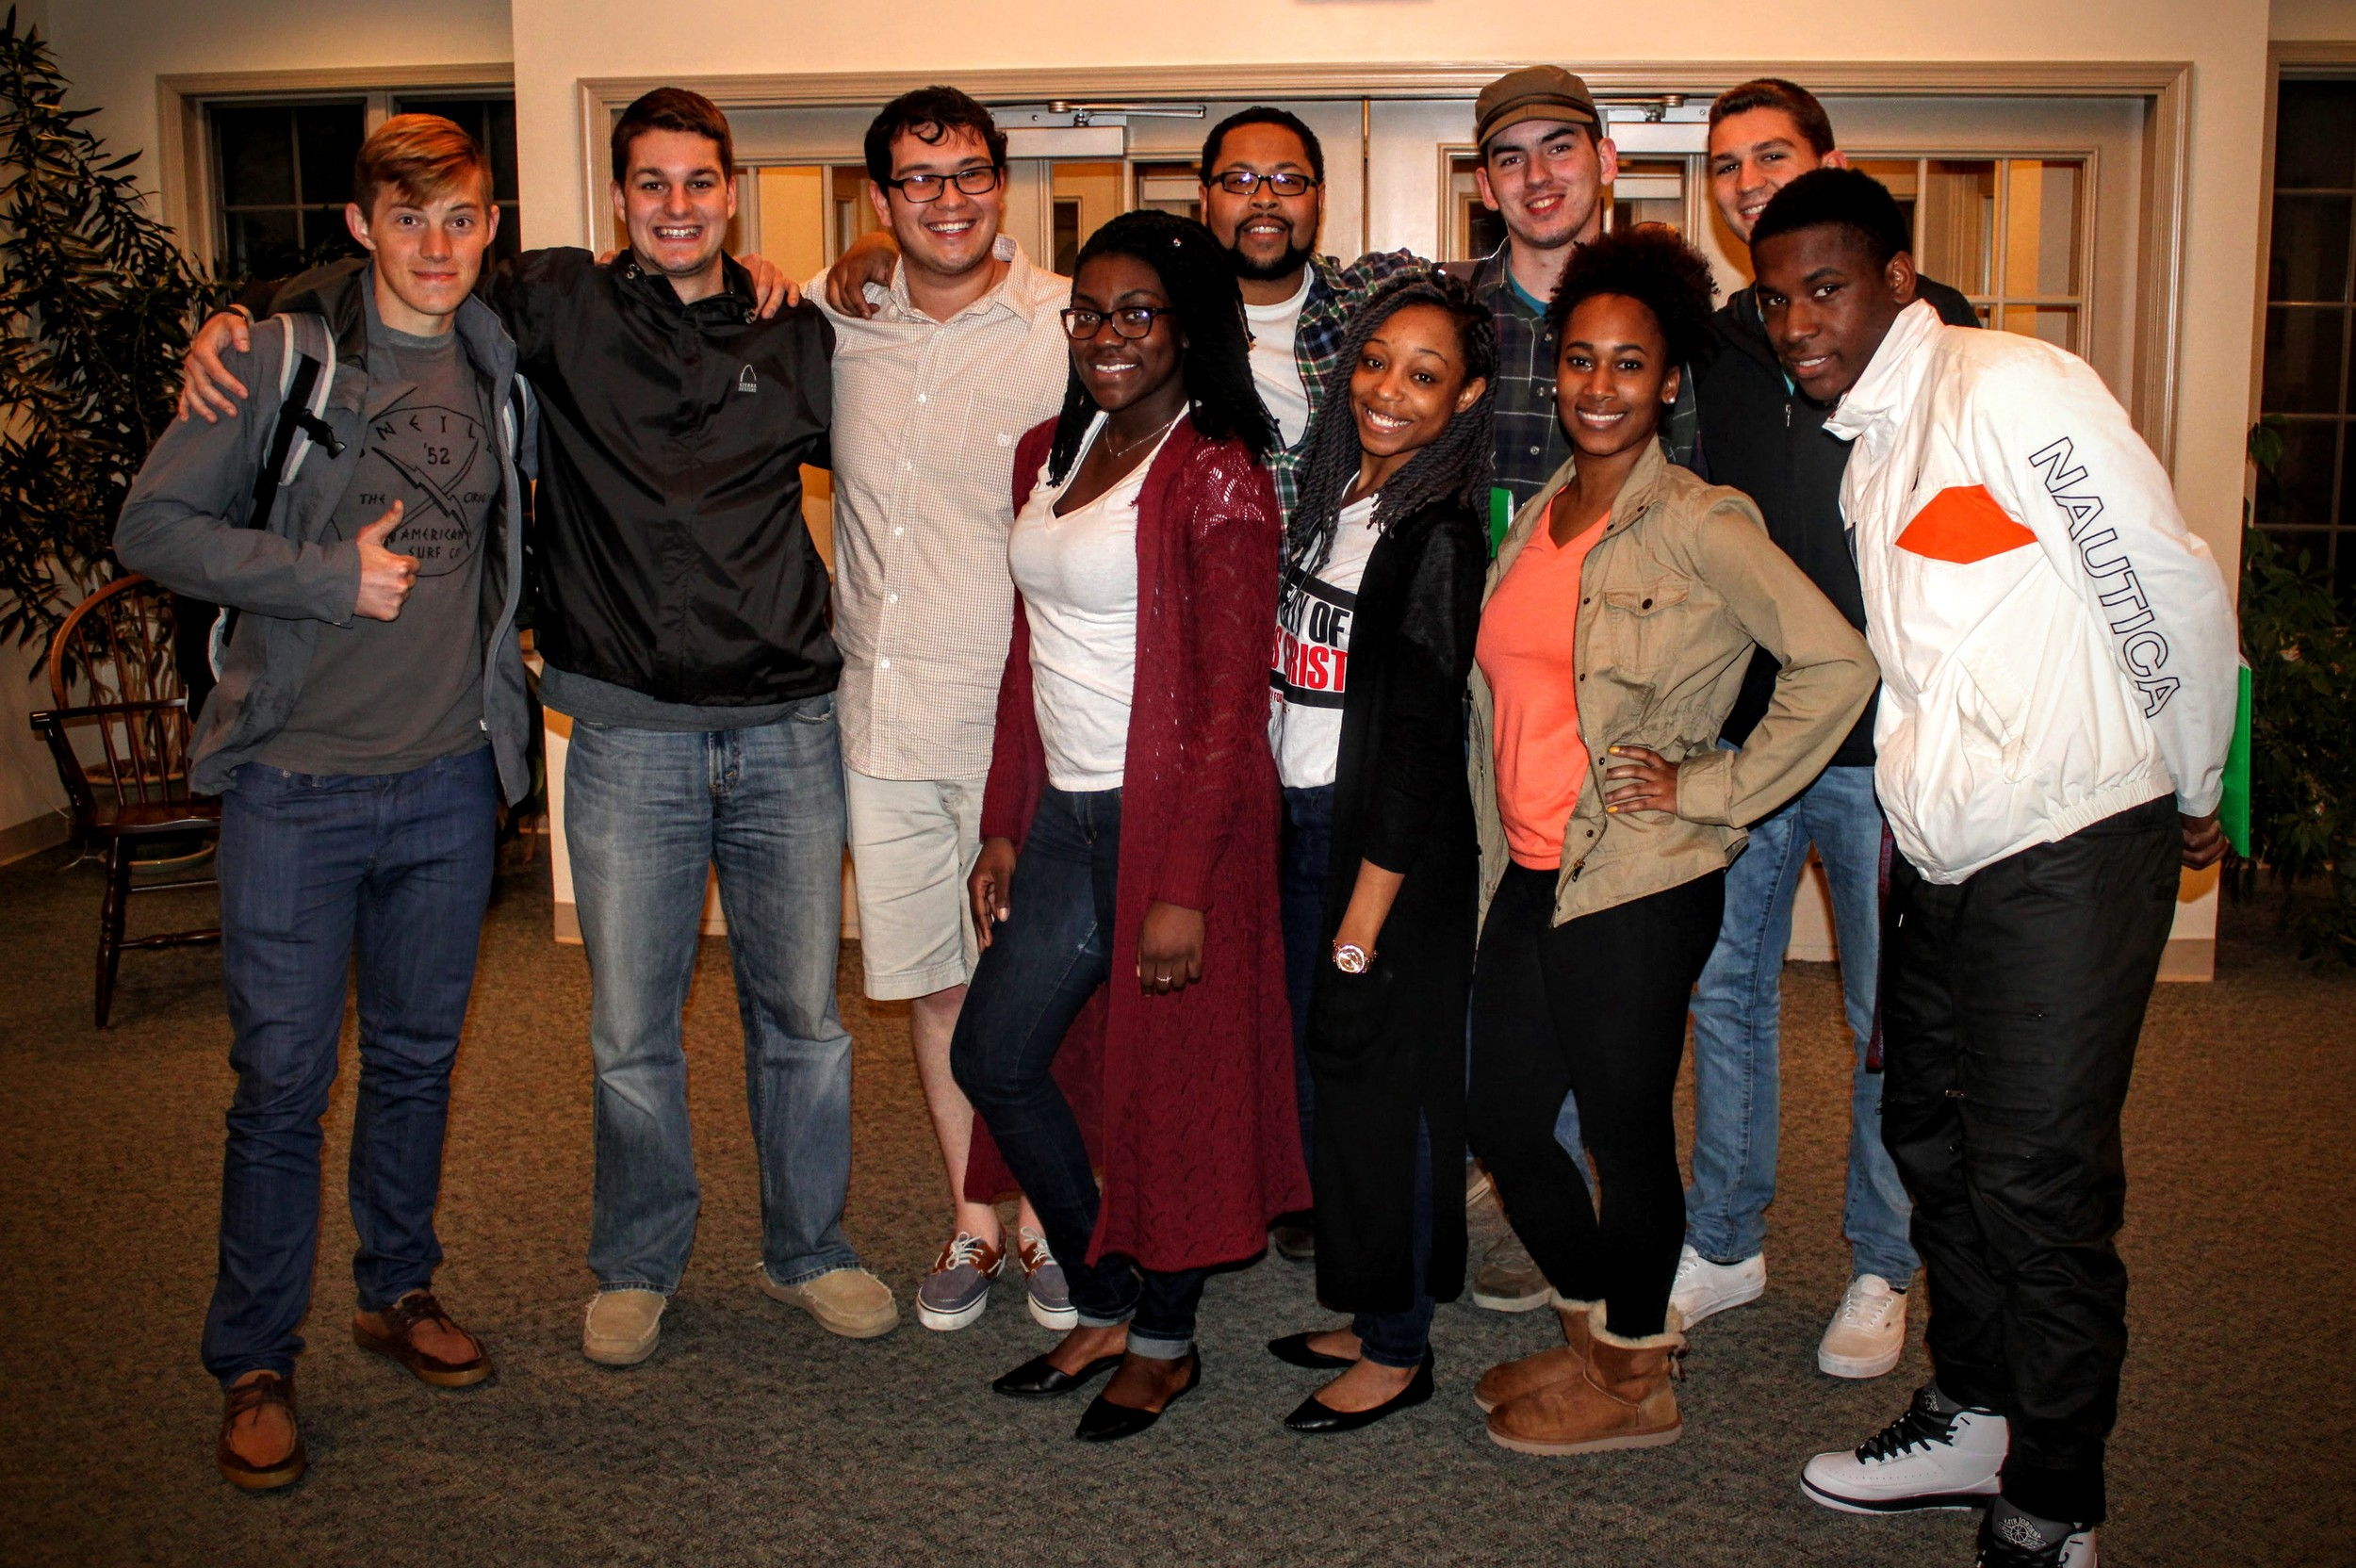 The Dover group spent 2 days in Lehigh learning how to study the Bible and enjoying fellowship.